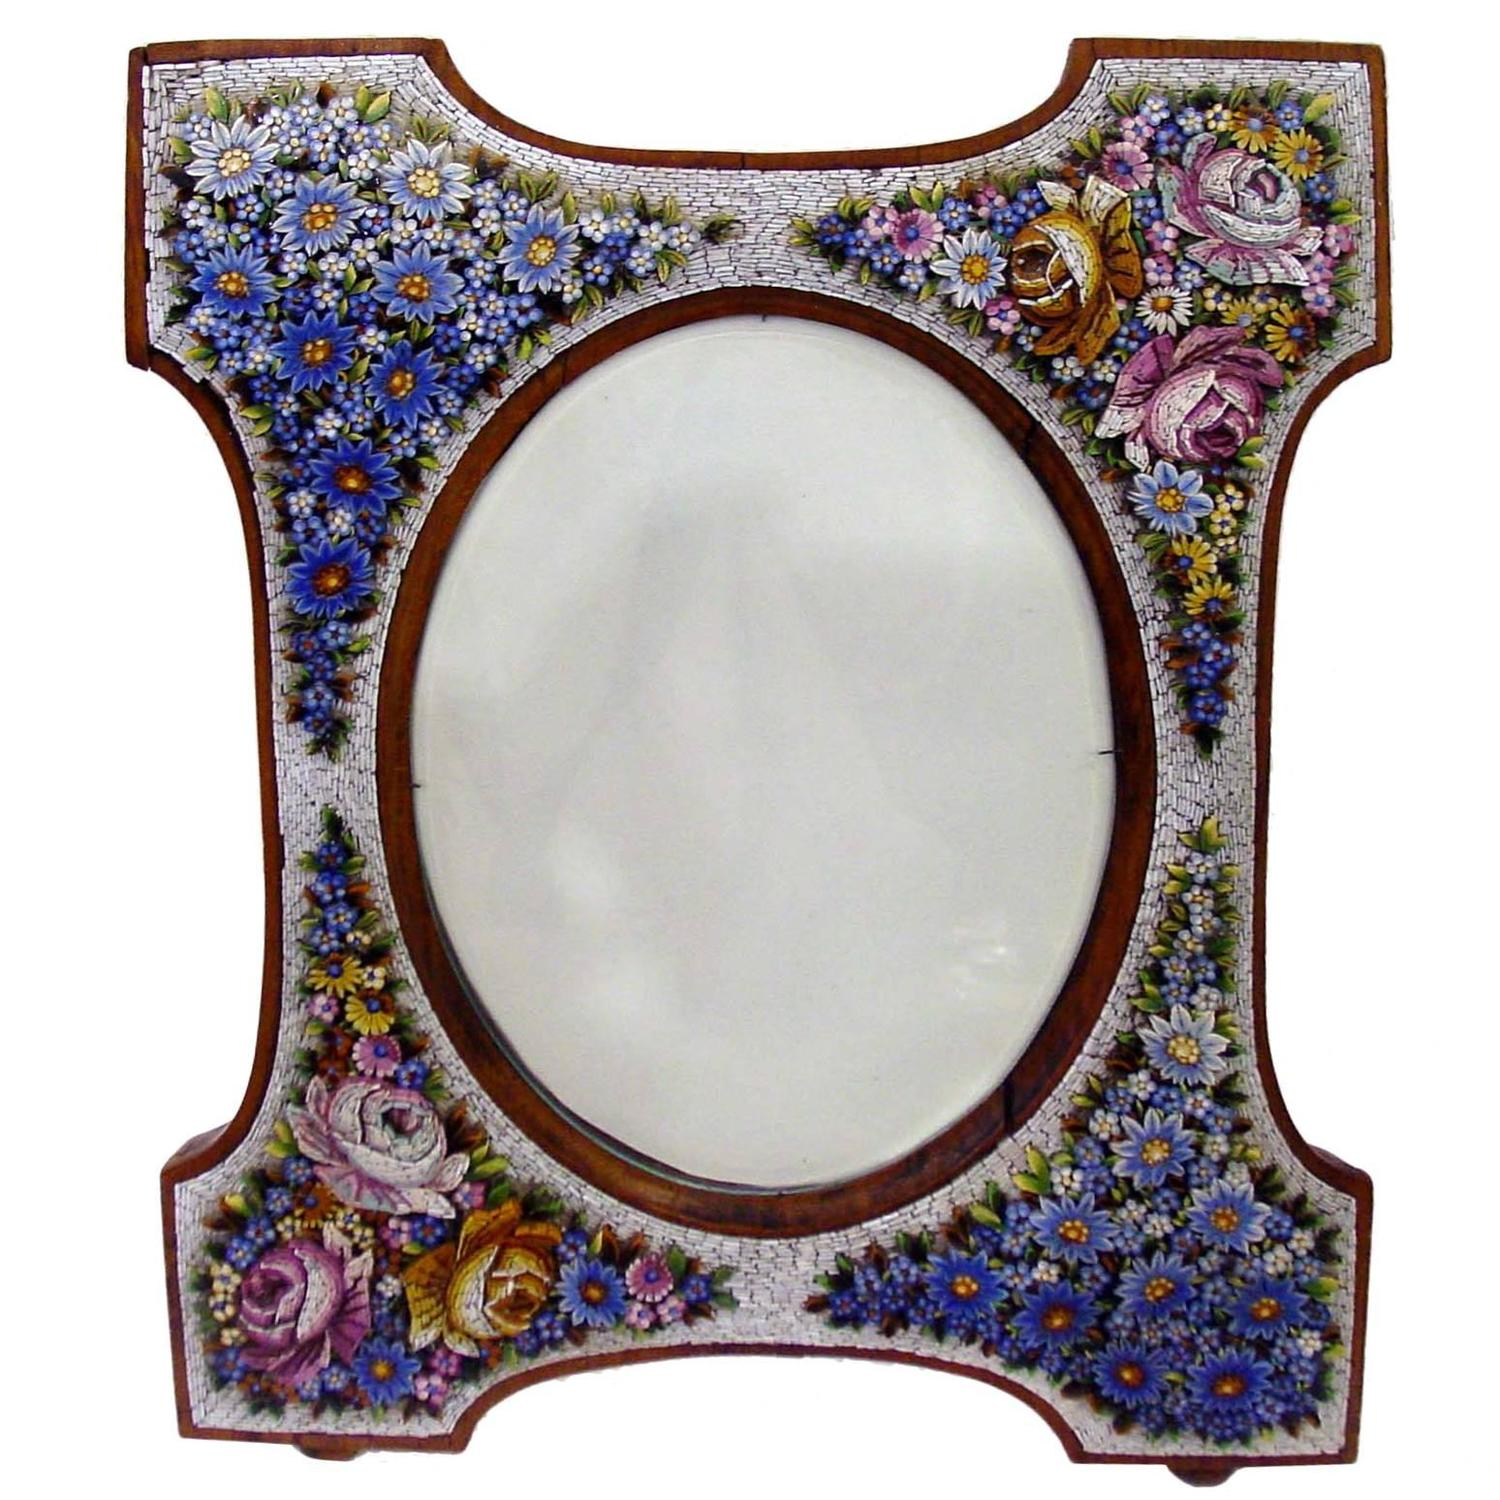 superb micro mosaic frame venice italy circa 1900 at 1stdibs - Mosaic Picture Frames